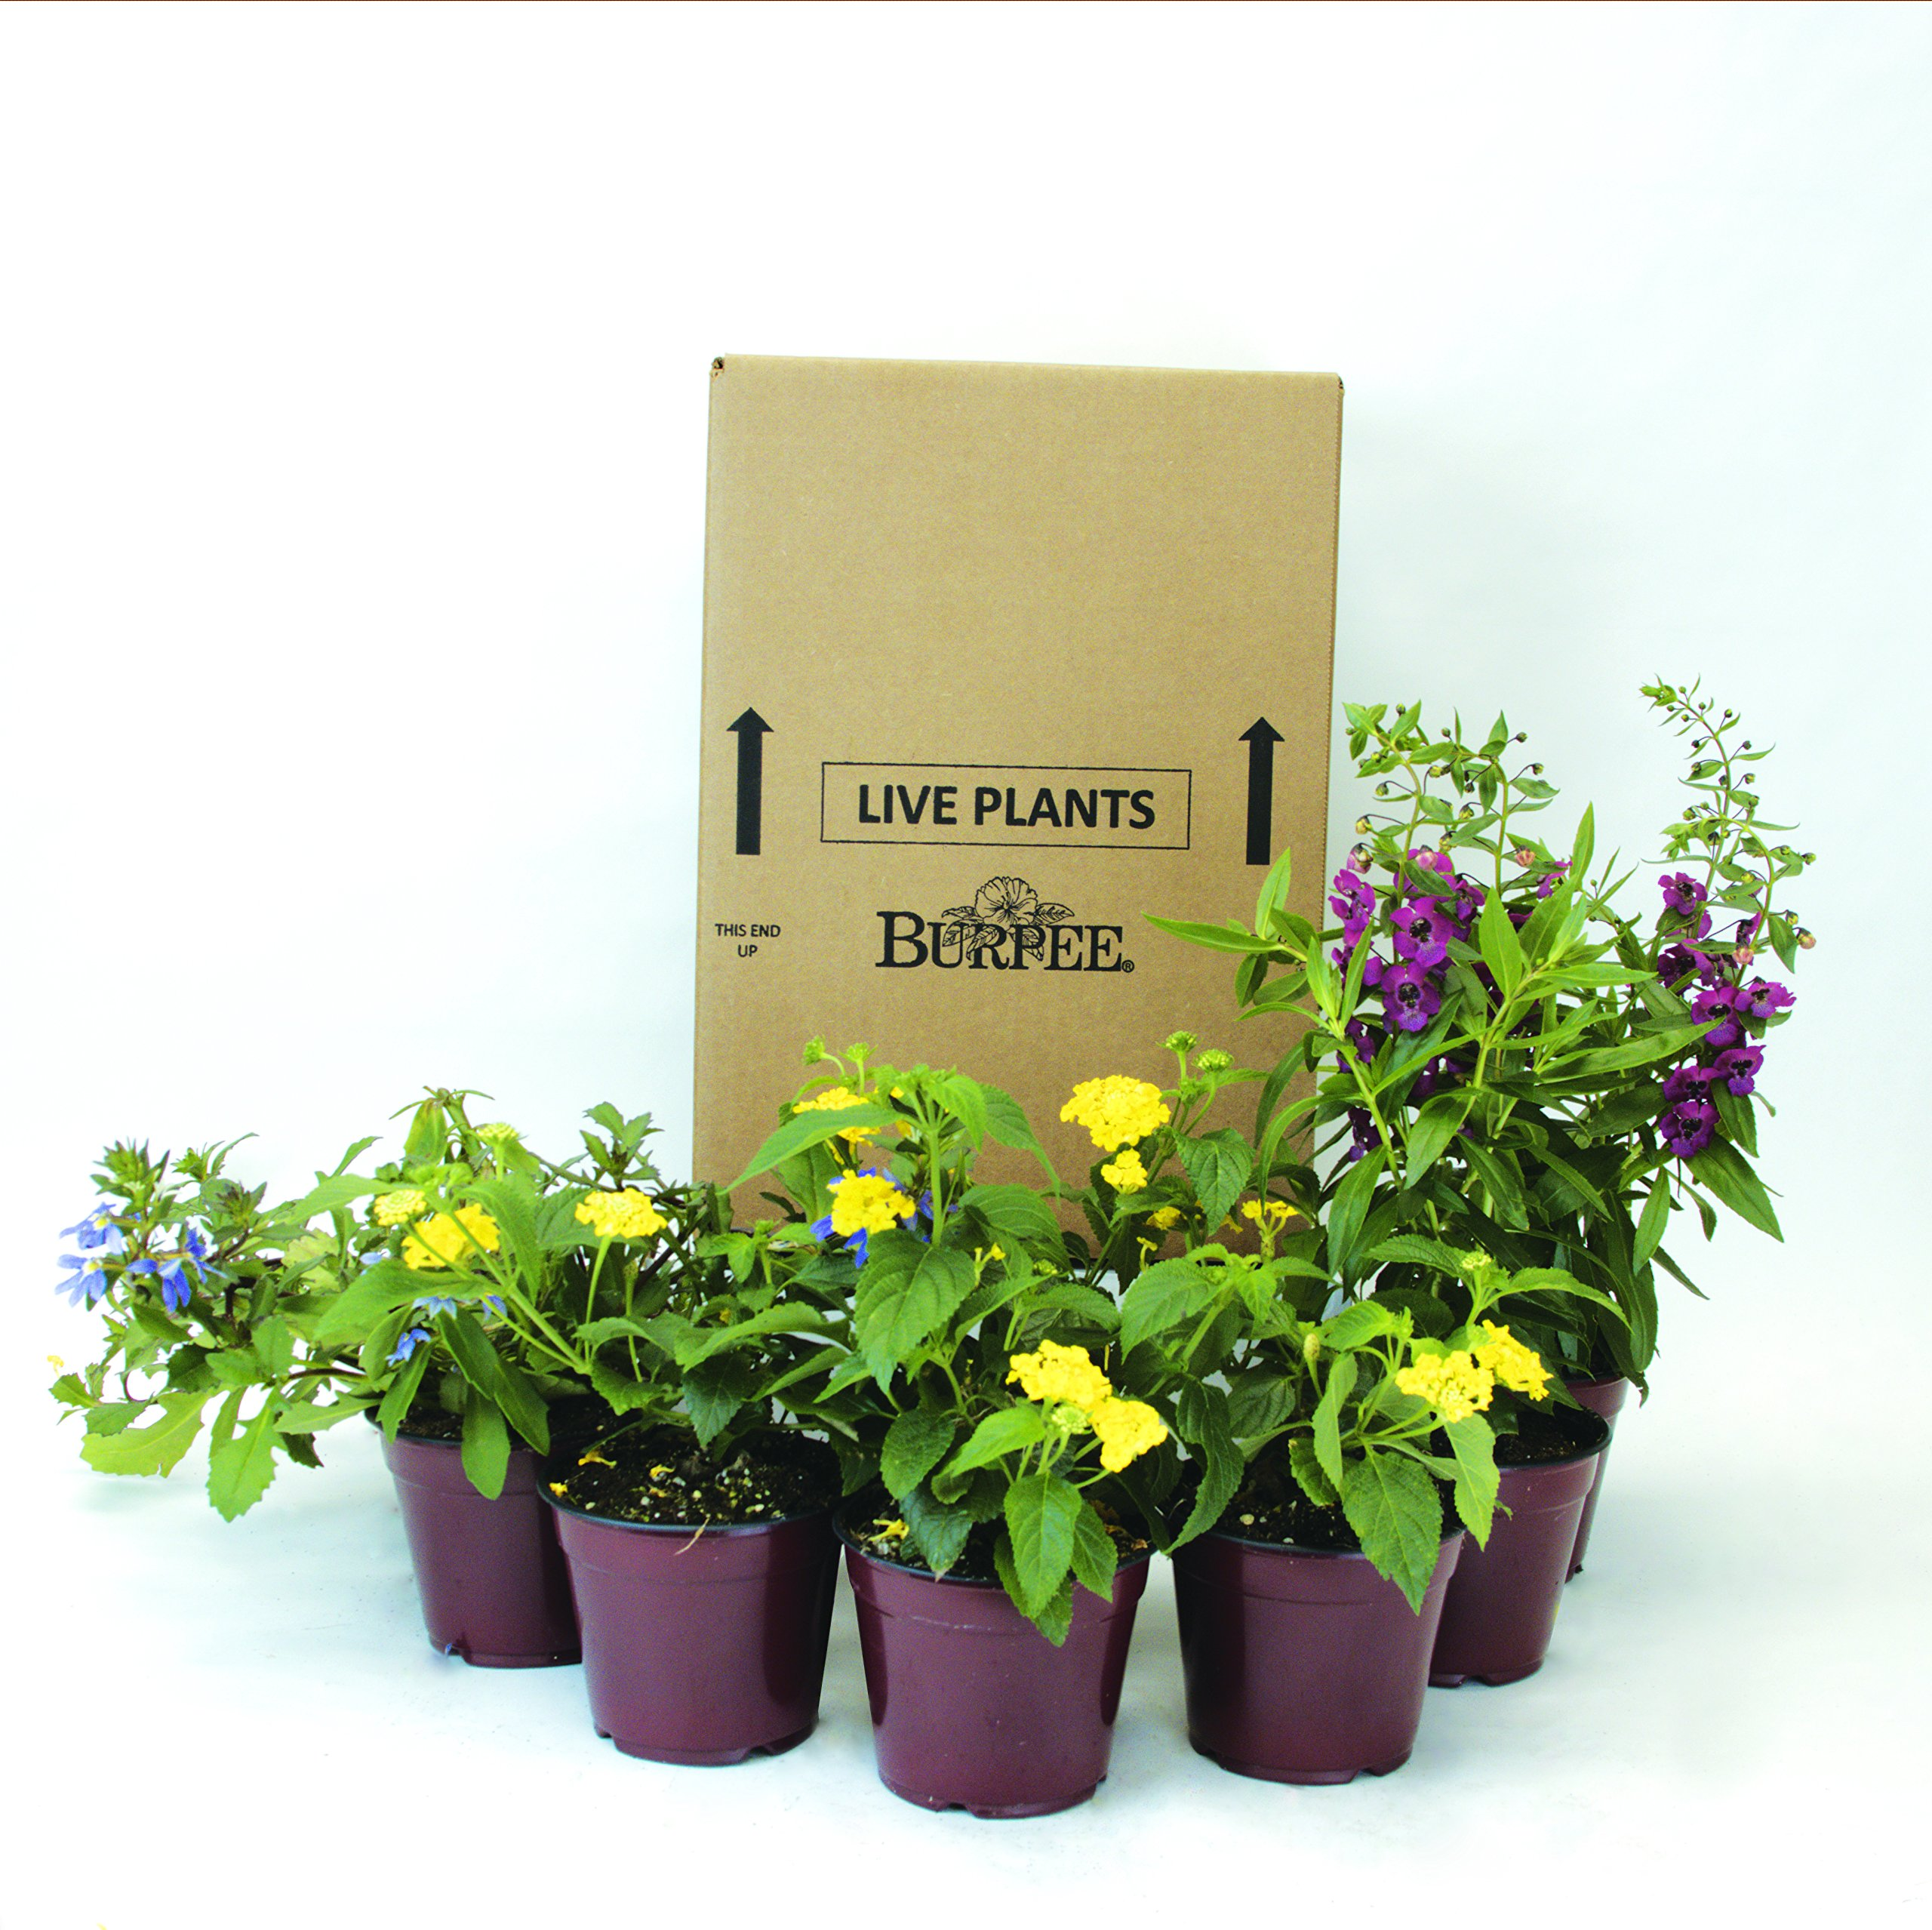 Burpee Combo 'Daydream' - Create Instant Colorful Container Gardens with Eight 4 in. pots by Burpee (Image #1)